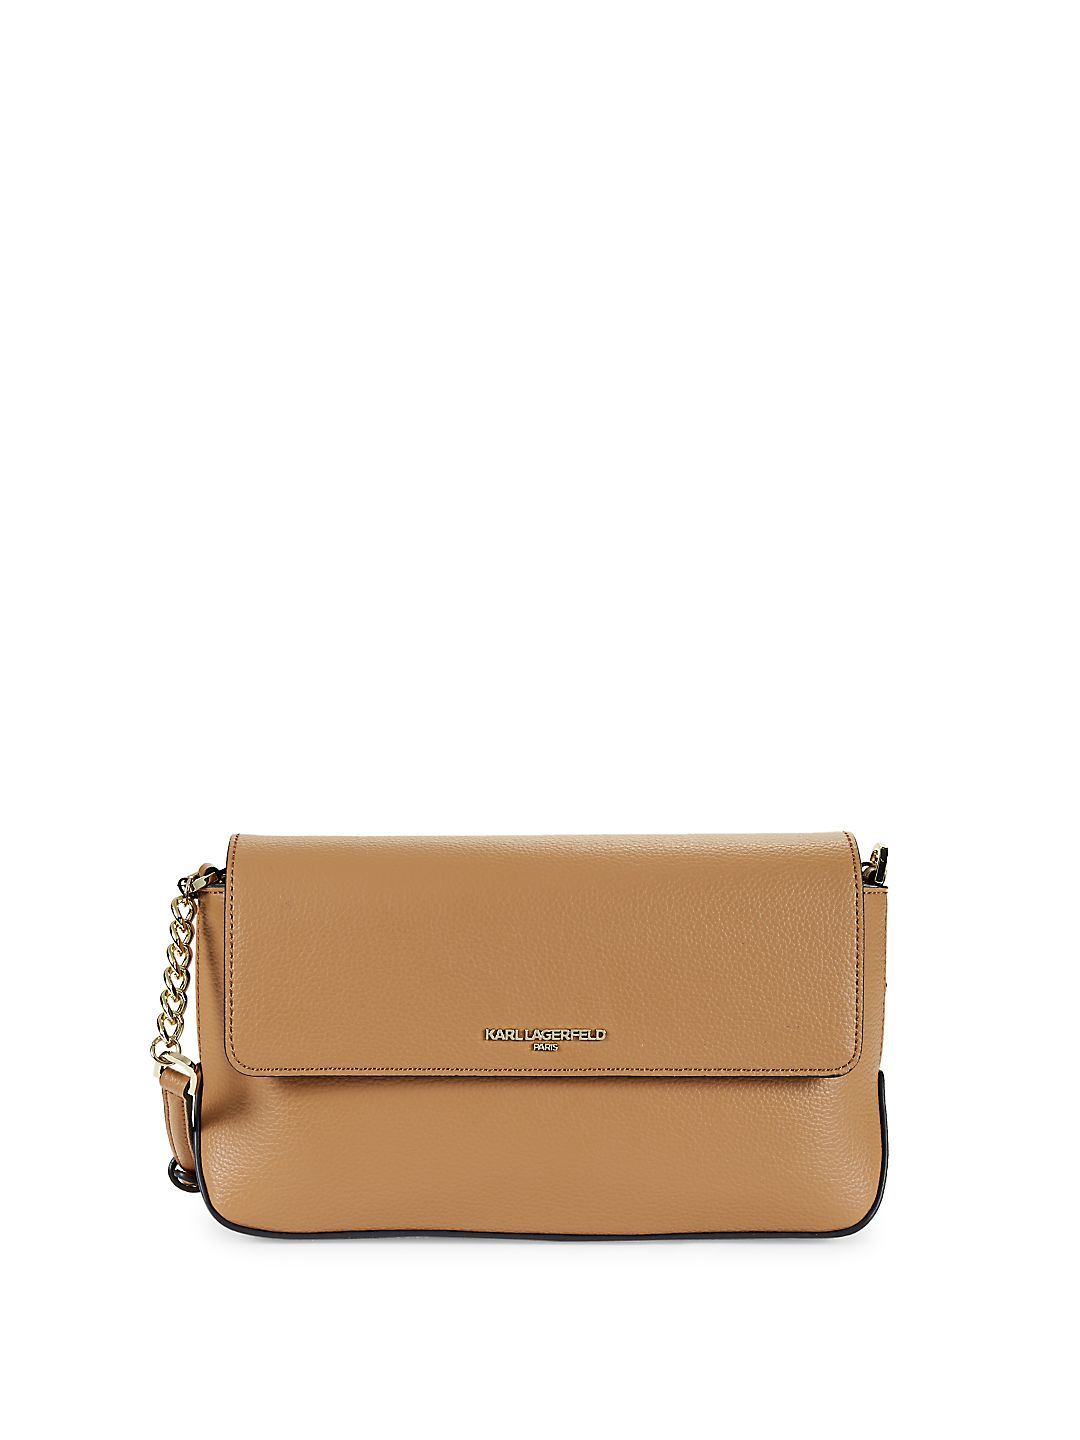 Iris Leather Flap Crossbody